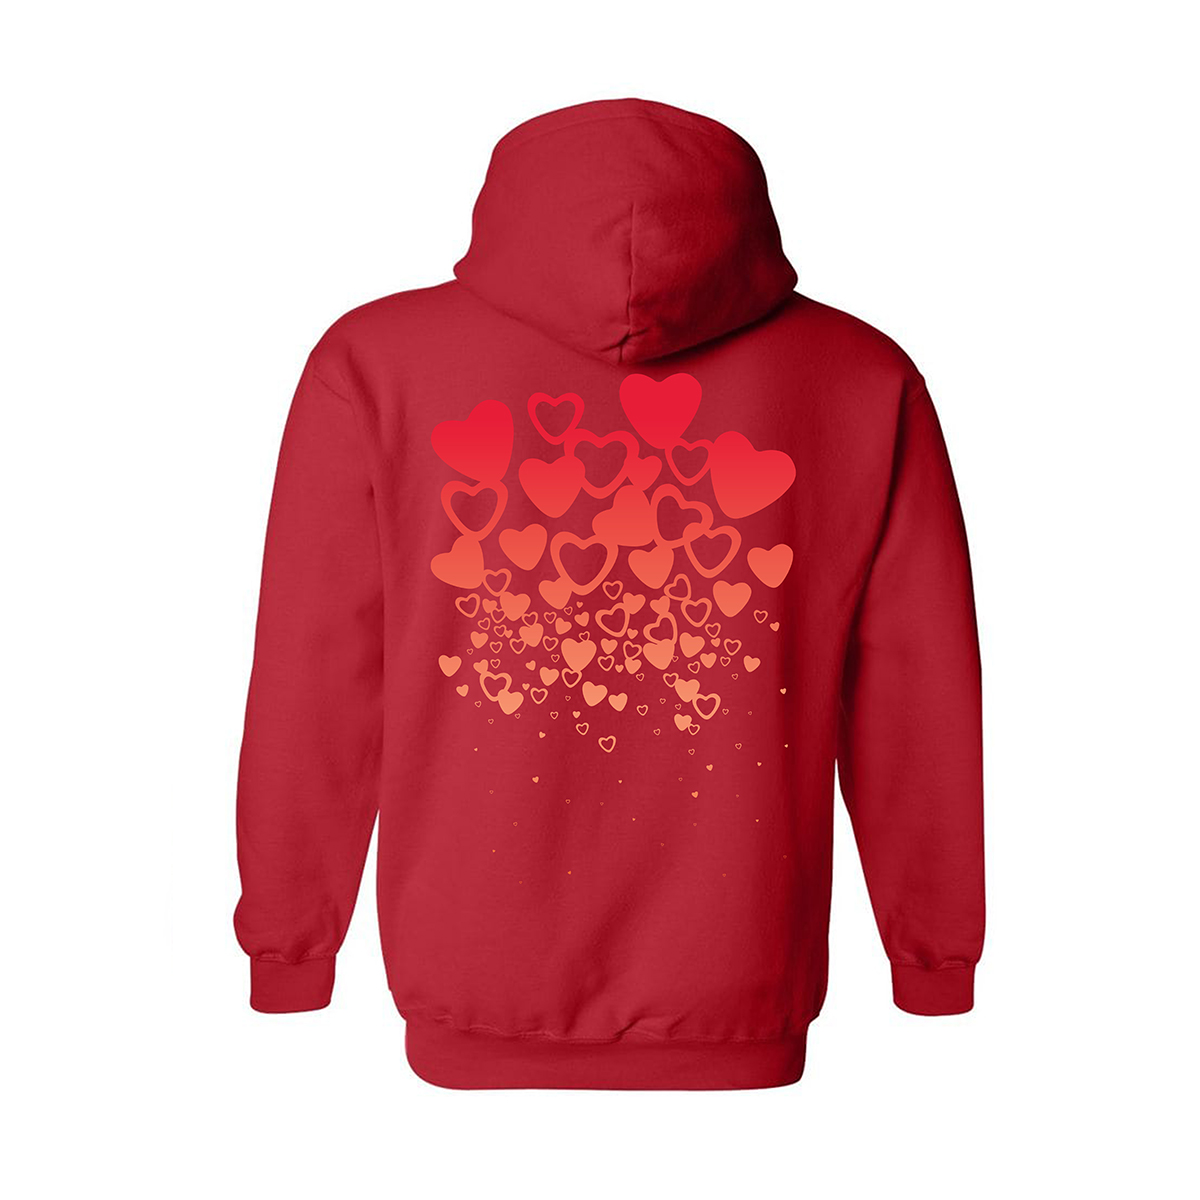 A Tribe Called Quest Bonita Raining Hearts Gradient Hoodie